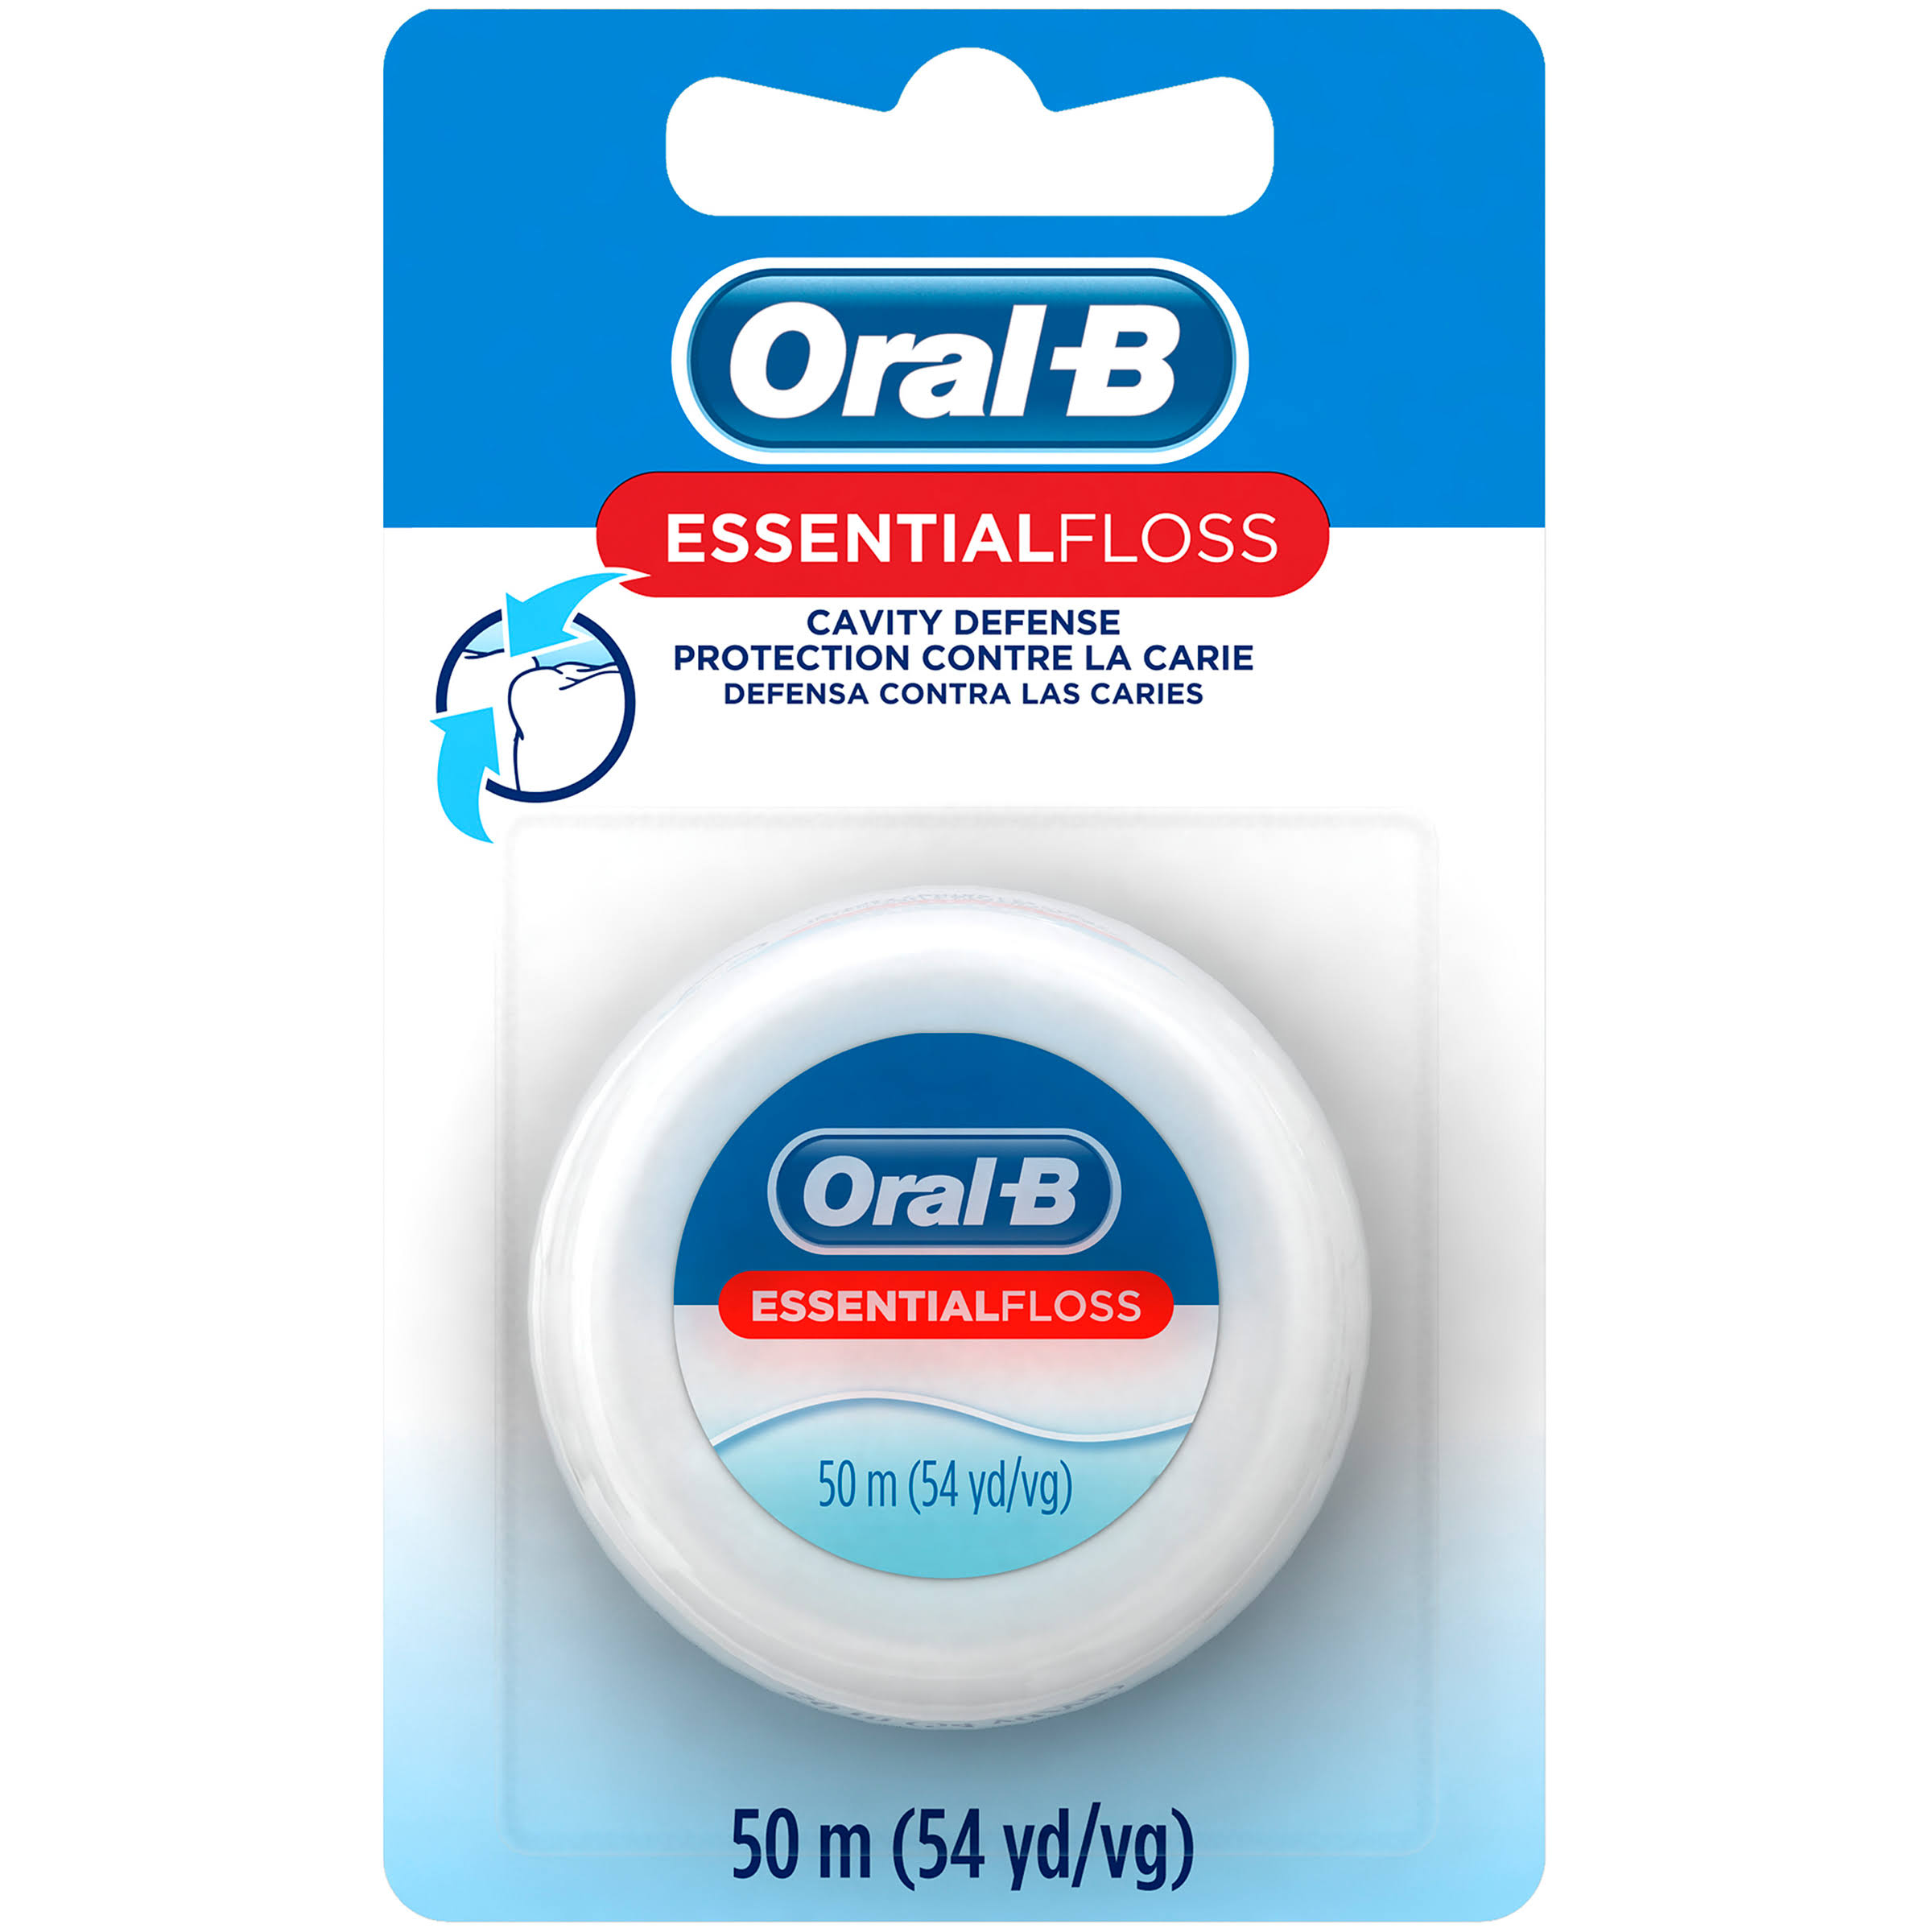 Oral-B Essential Floss - 54yds, Pack of 24